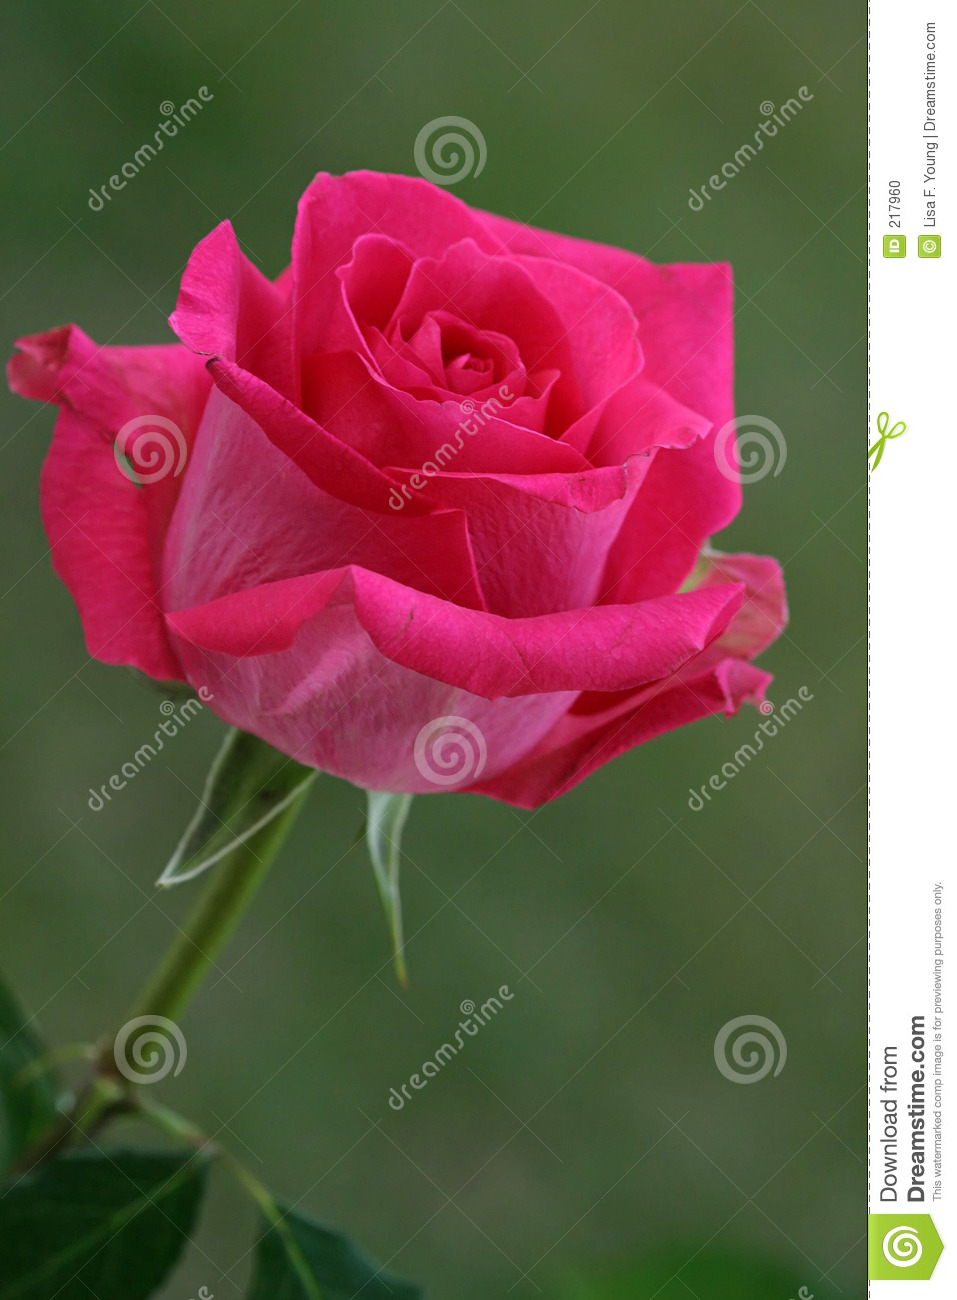 hot pink rose stock photo image of blossom bloom bright